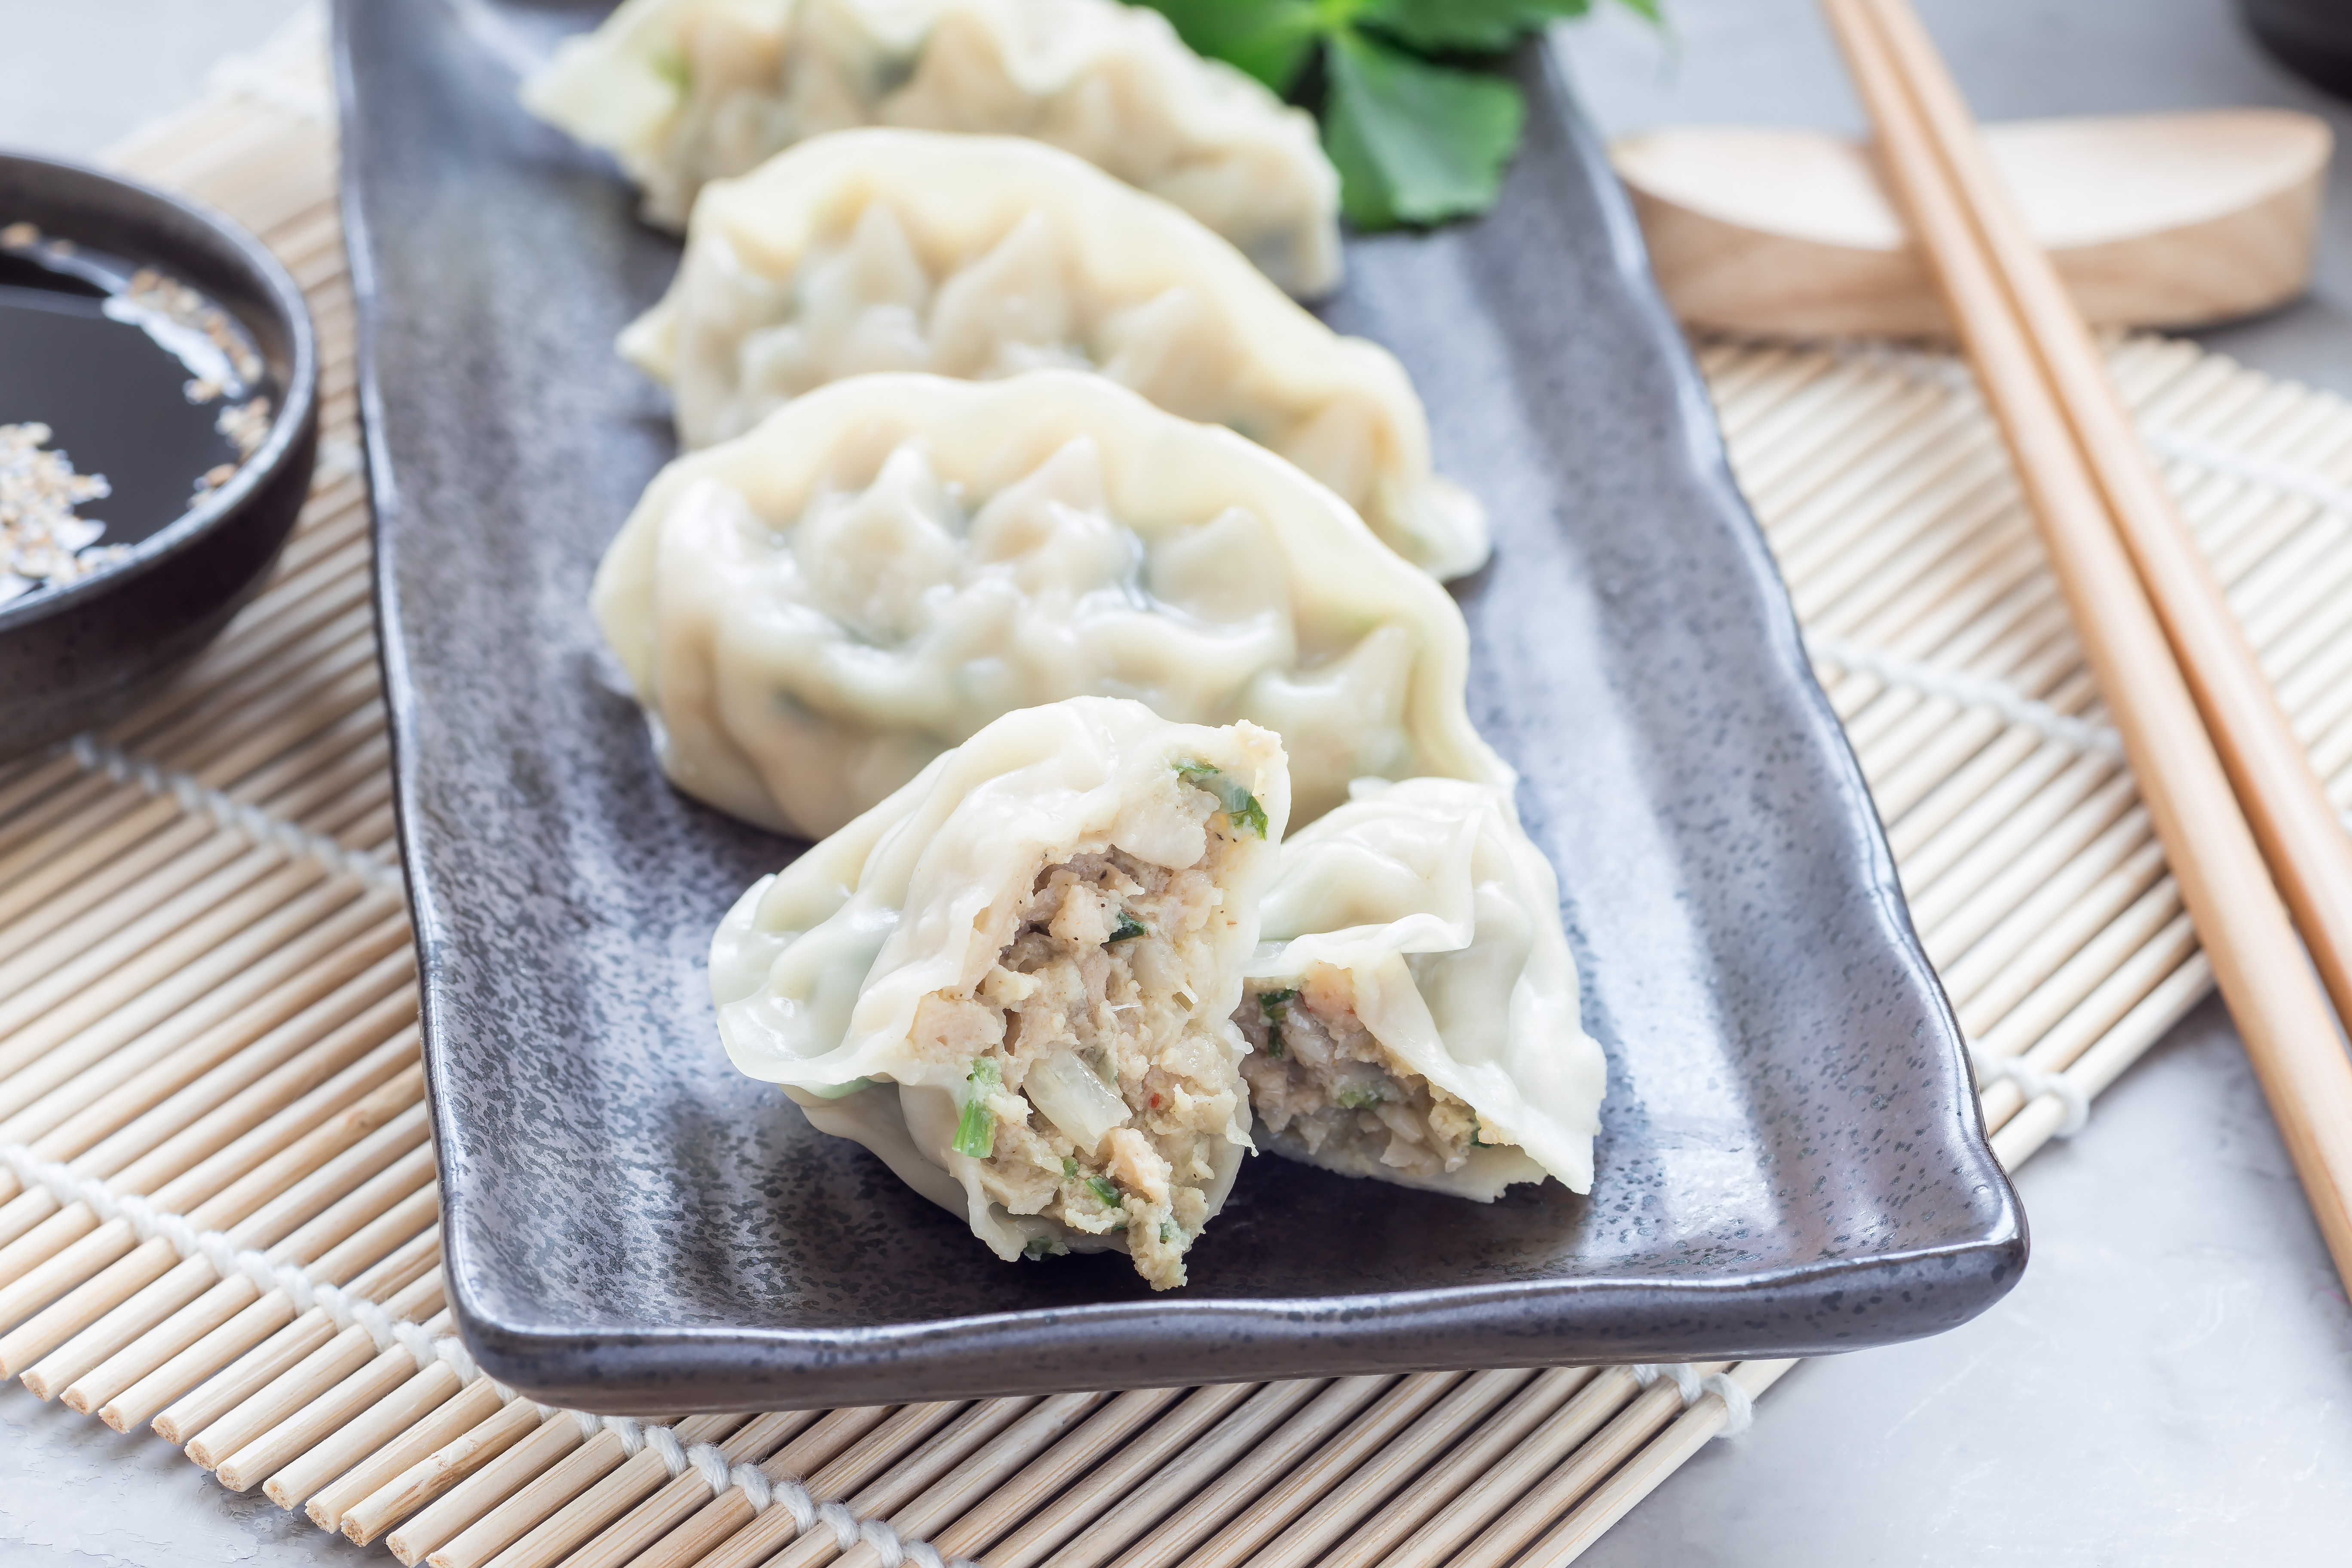 Steamed Korean dumplings Mandu with chicken meat and vegetables on a black plate, horizontal